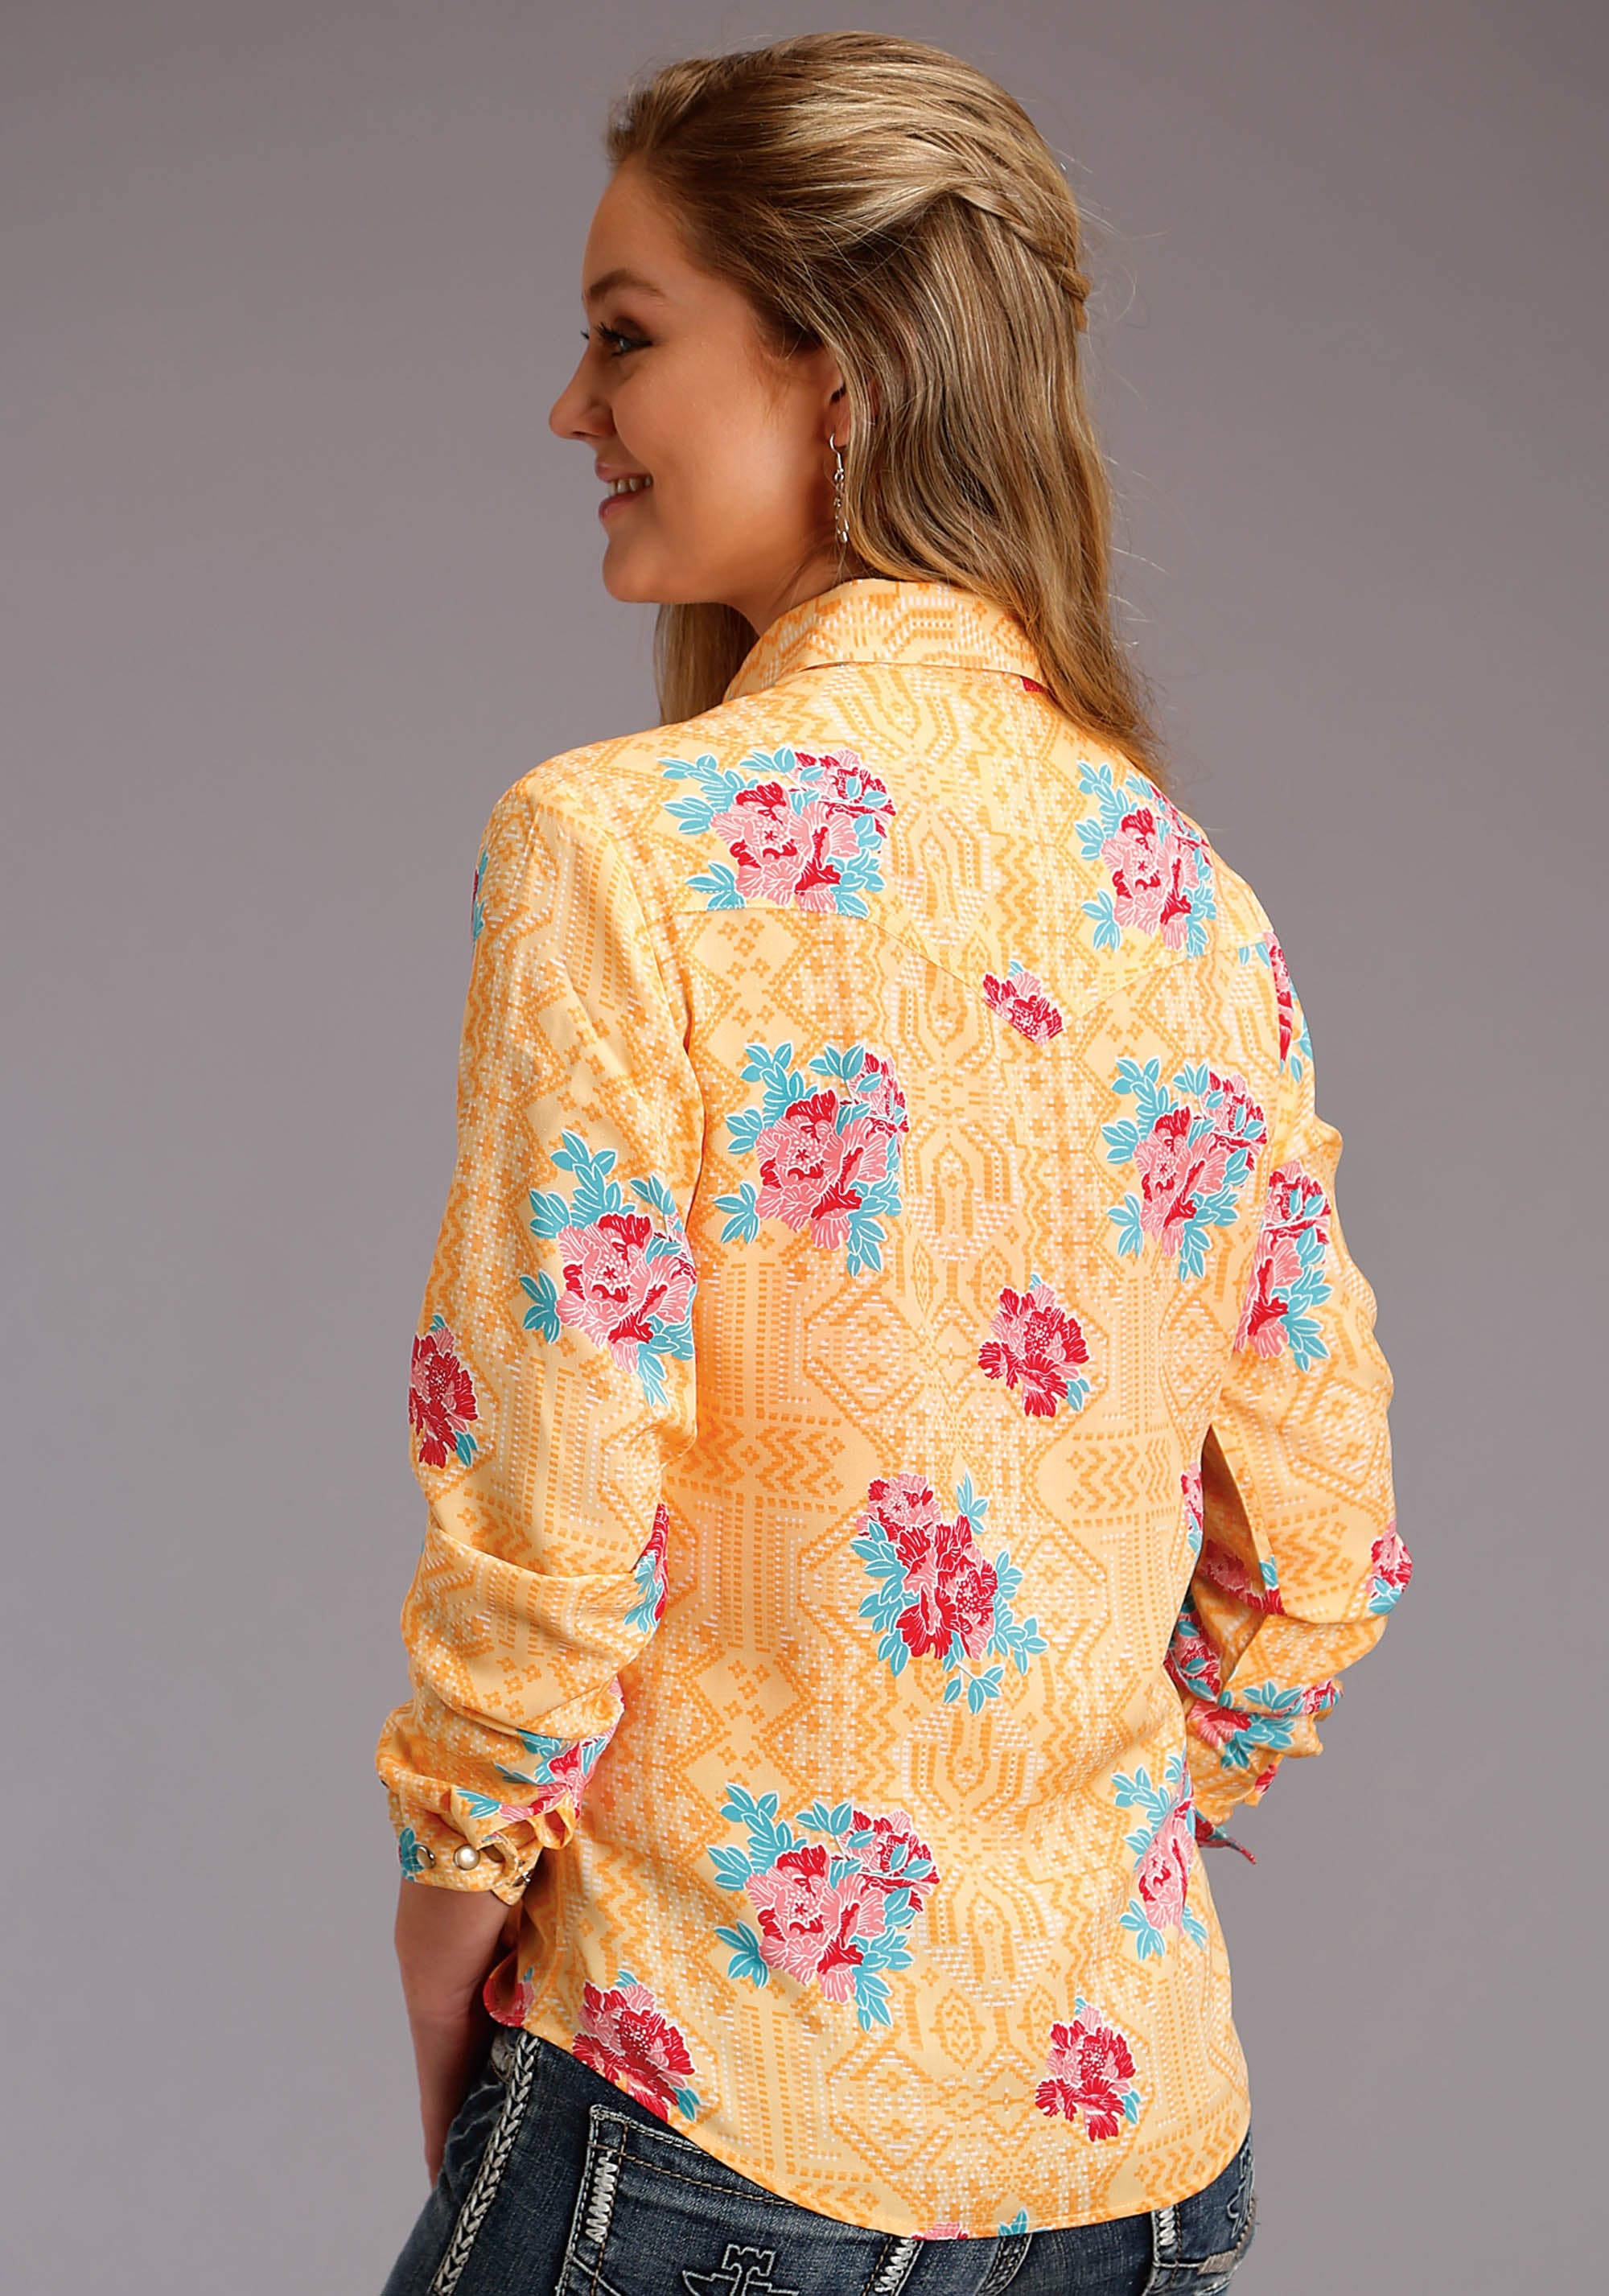 ROPER WOMENS YELLOW 2749 SPRING FLORAL LS WESTERN SHIRT FIVE STAR COLLECTION- SPRING I LONG SLEEVE